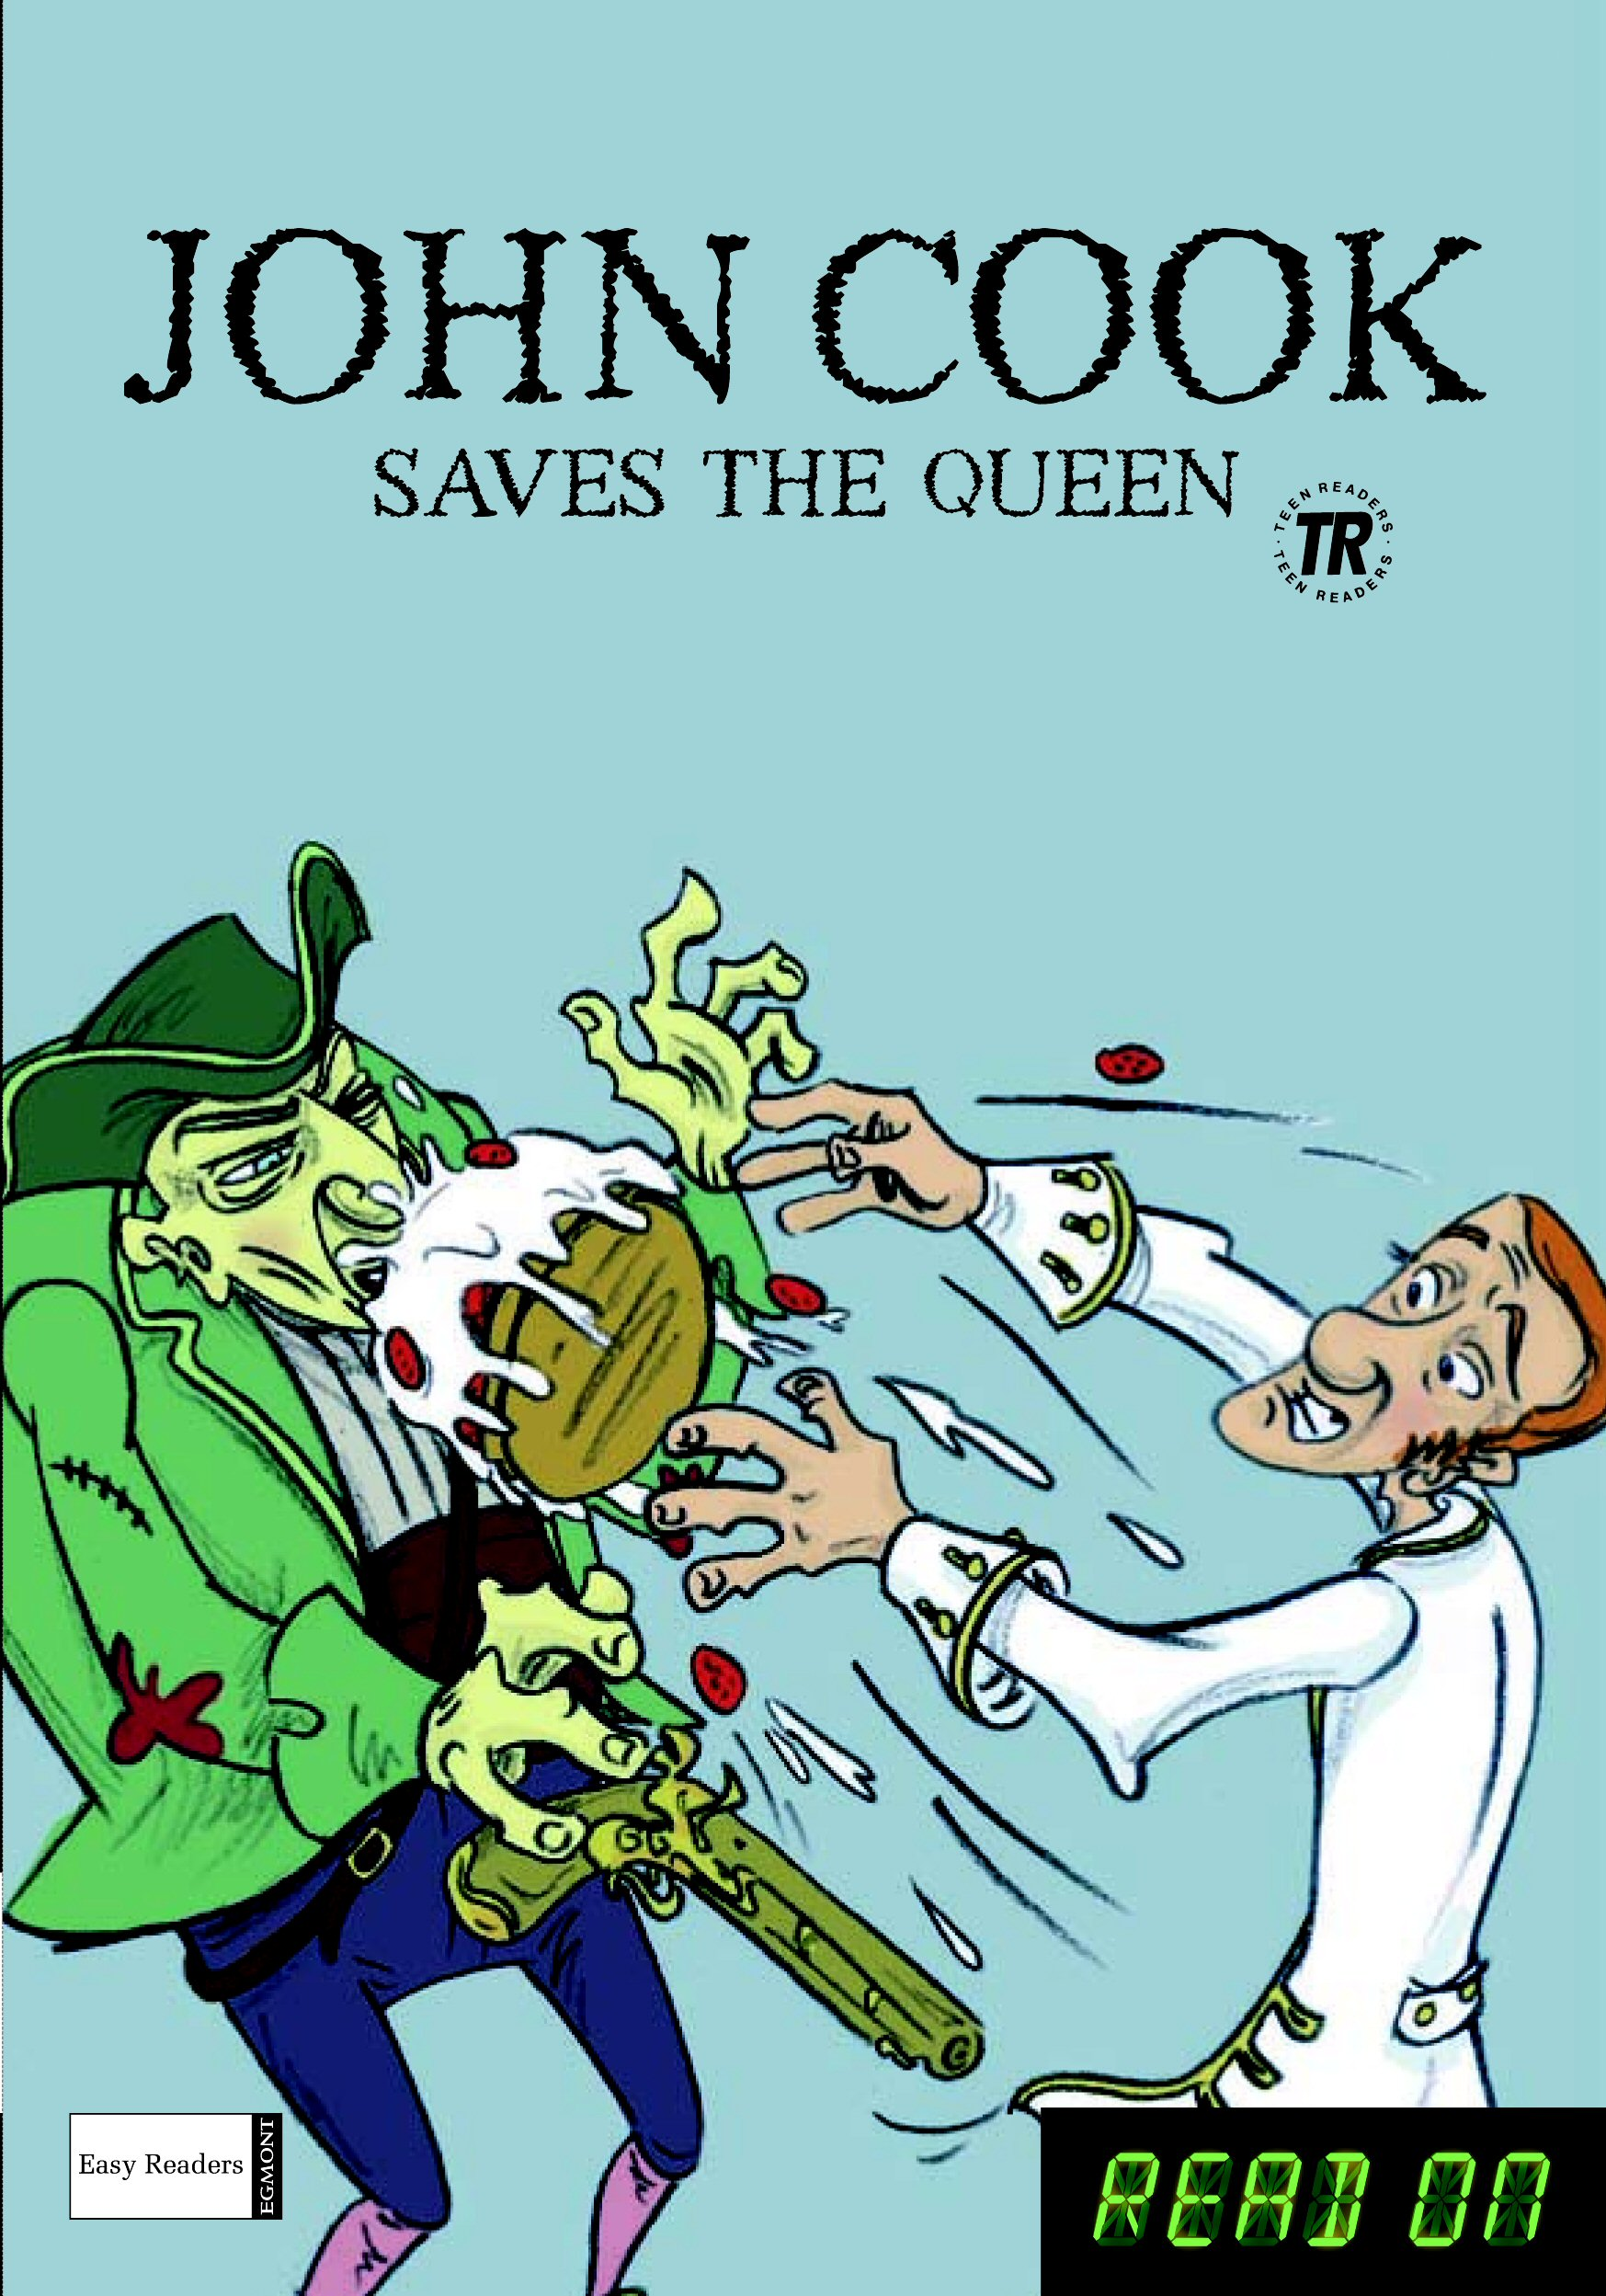 John Cook Saves the Queen/John Cook and the Queen's Crown - READ ON series